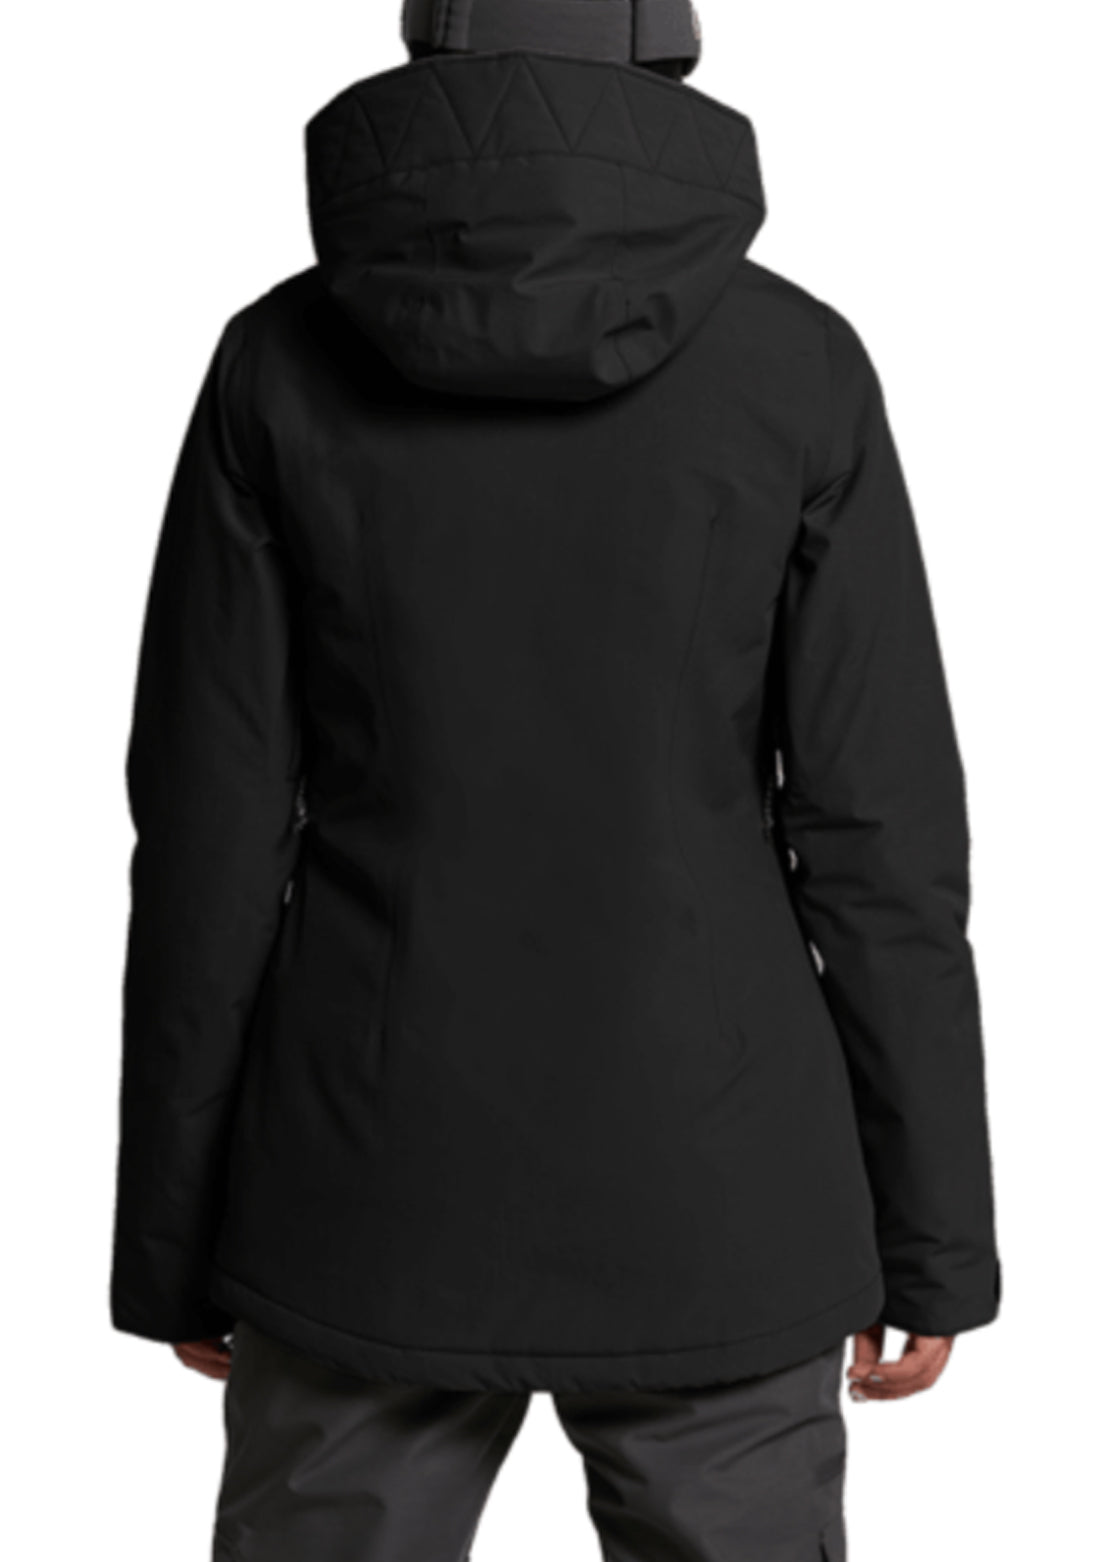 Volcom Women's Eva Insulated GORE-TEX Jacket Black